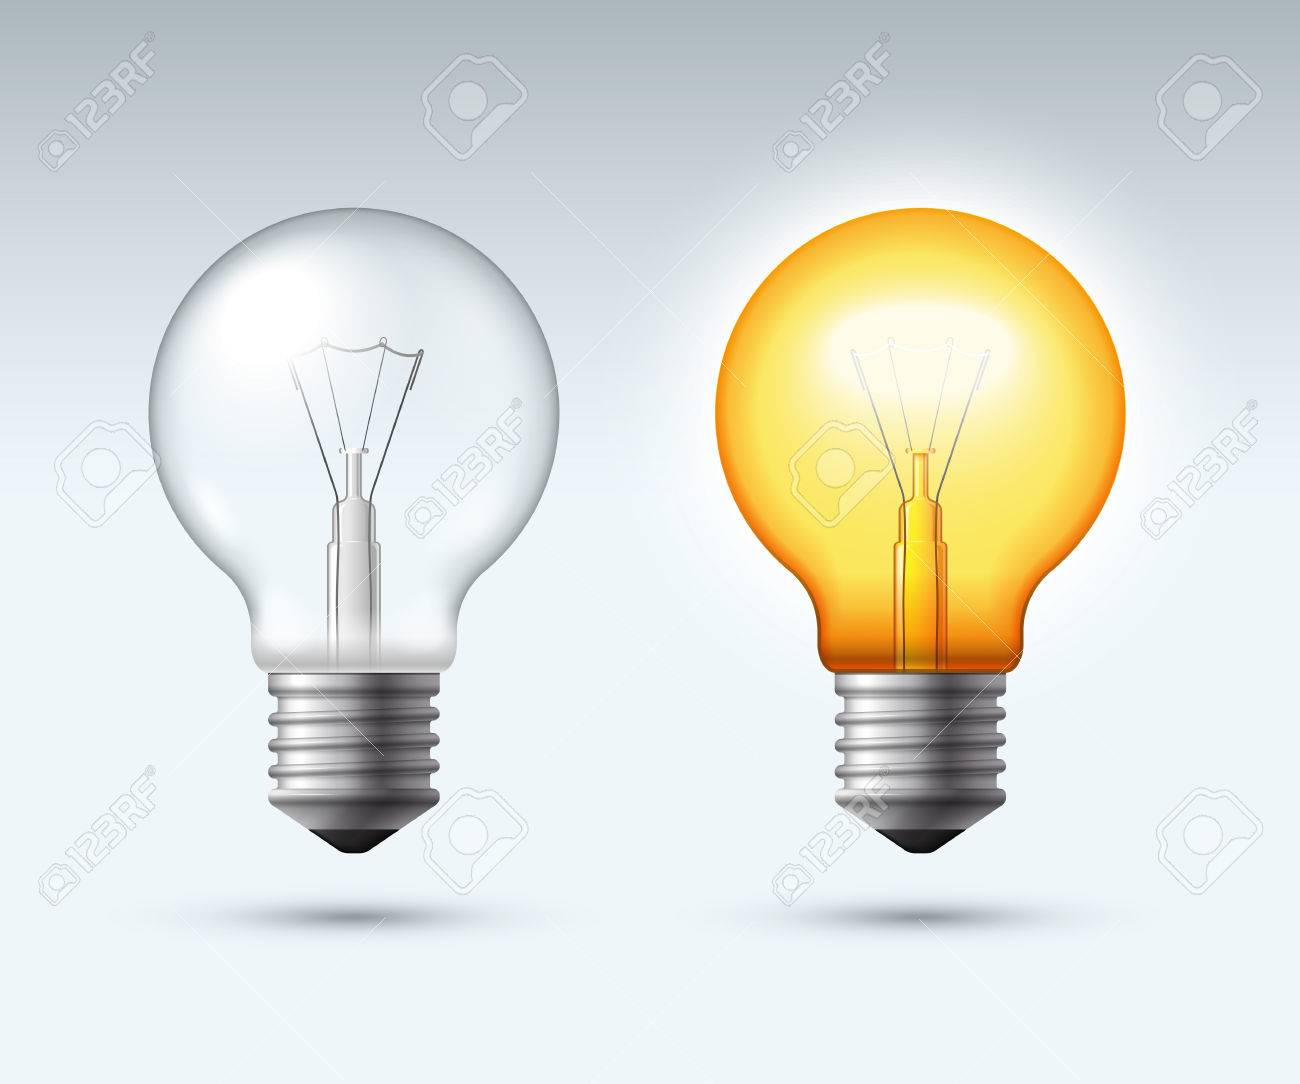 Light Bulb Switched On And Off Vector Illustration Royalty Free